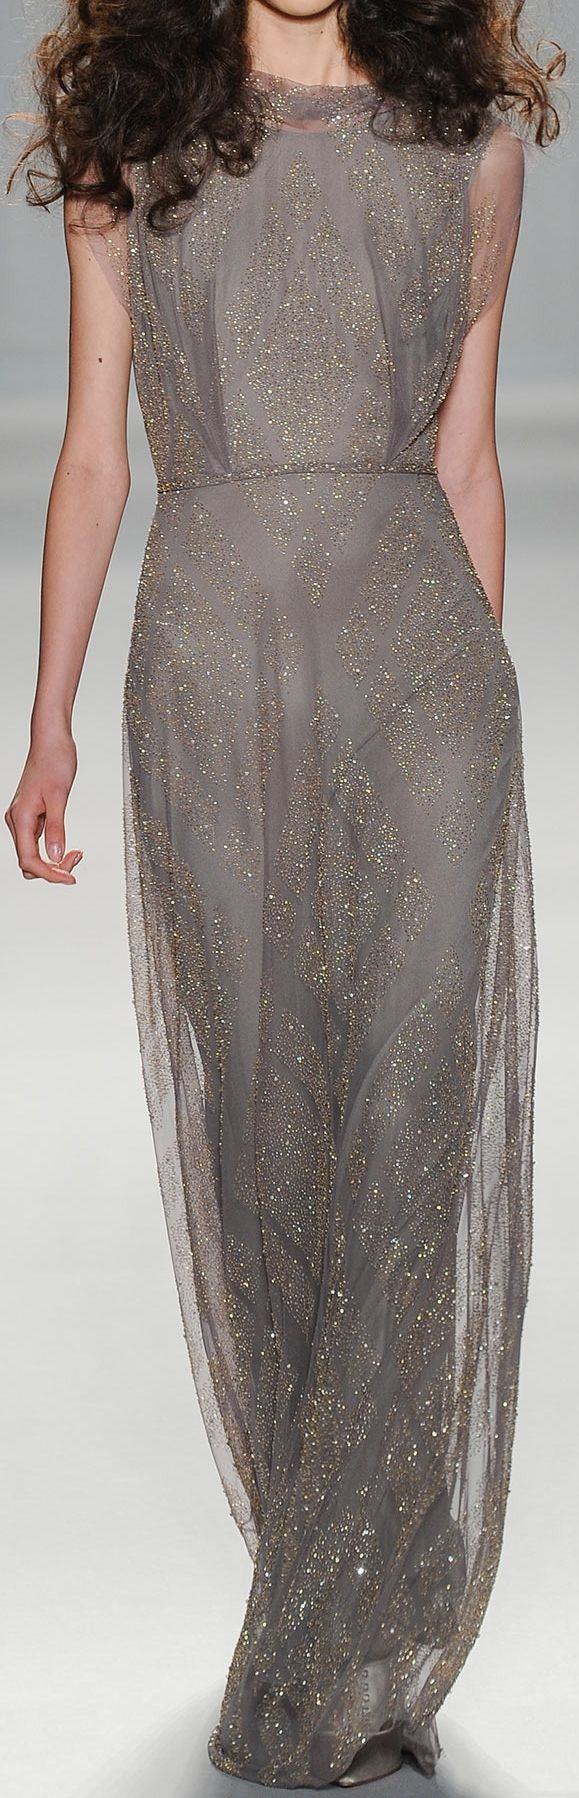 Jenny Packham at NYFW Spring 2014 Imagine this as a wedding dress! With cream or ivory instead of grey!